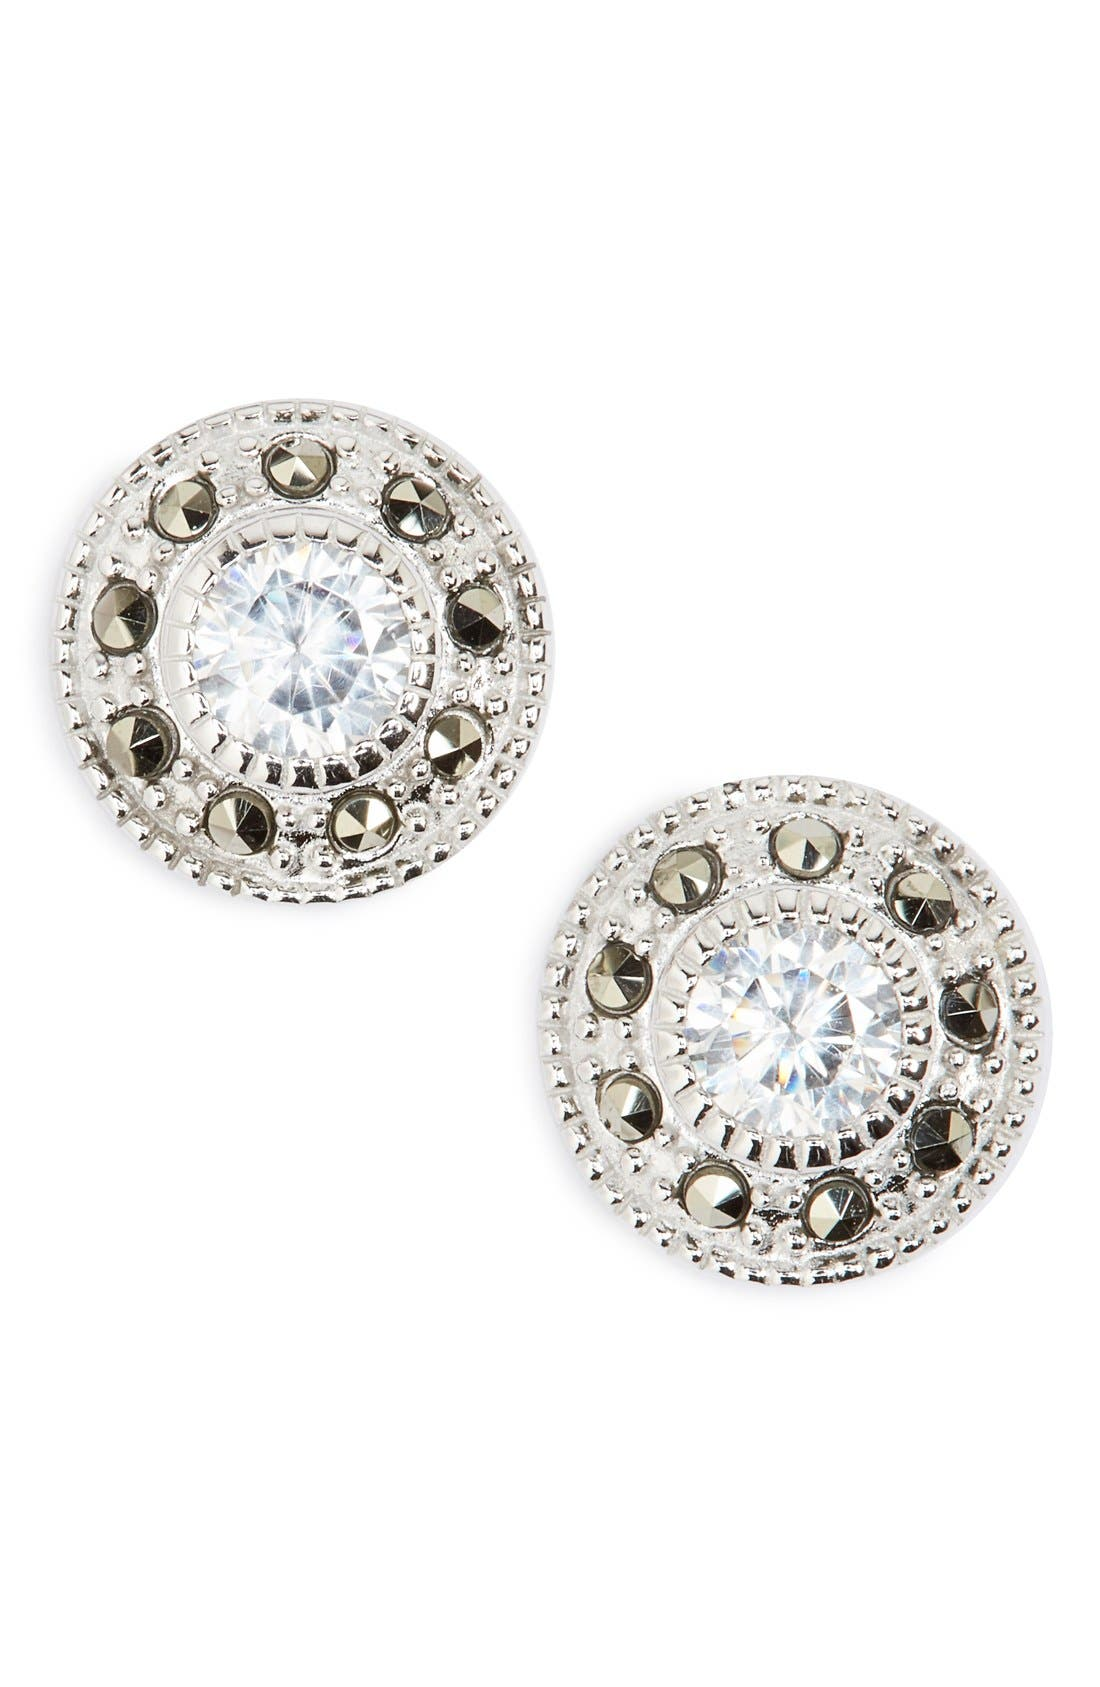 JUDITH JACK Pavé Stud Earrings